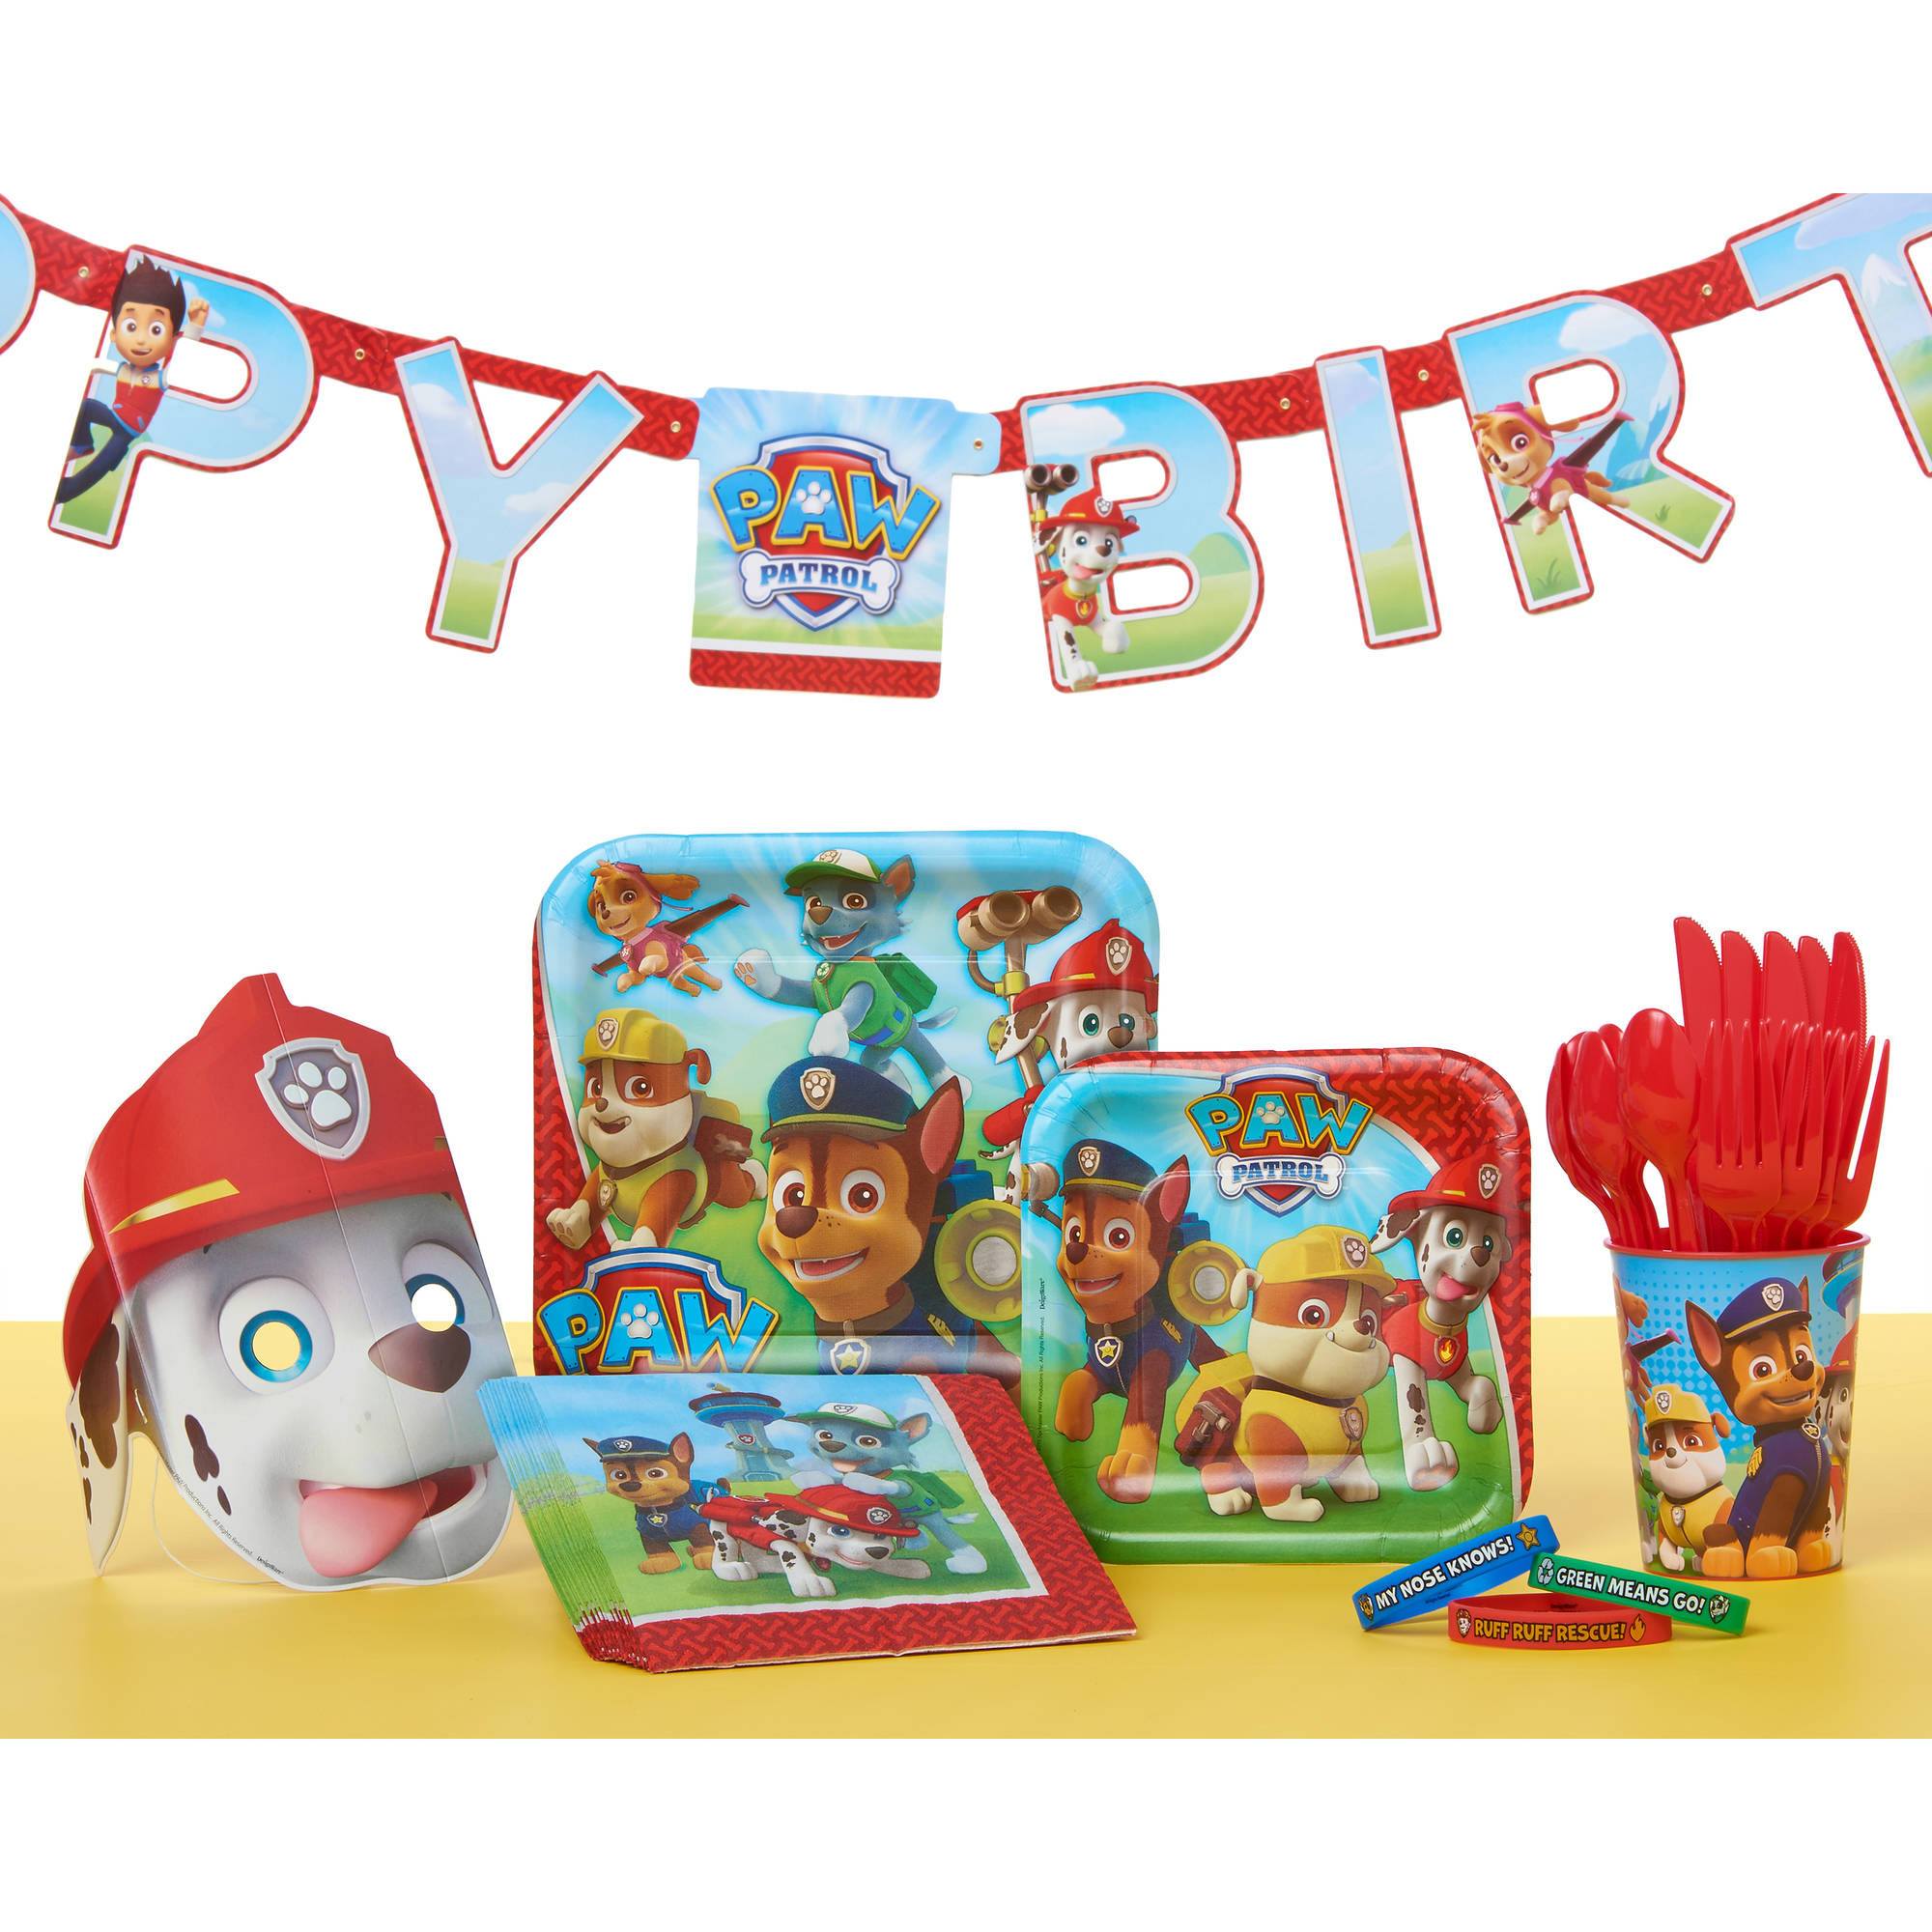 Best ideas about Walmart Birthday Decorations . Save or Pin PAW Patrol Party Supplies Walmart Now.